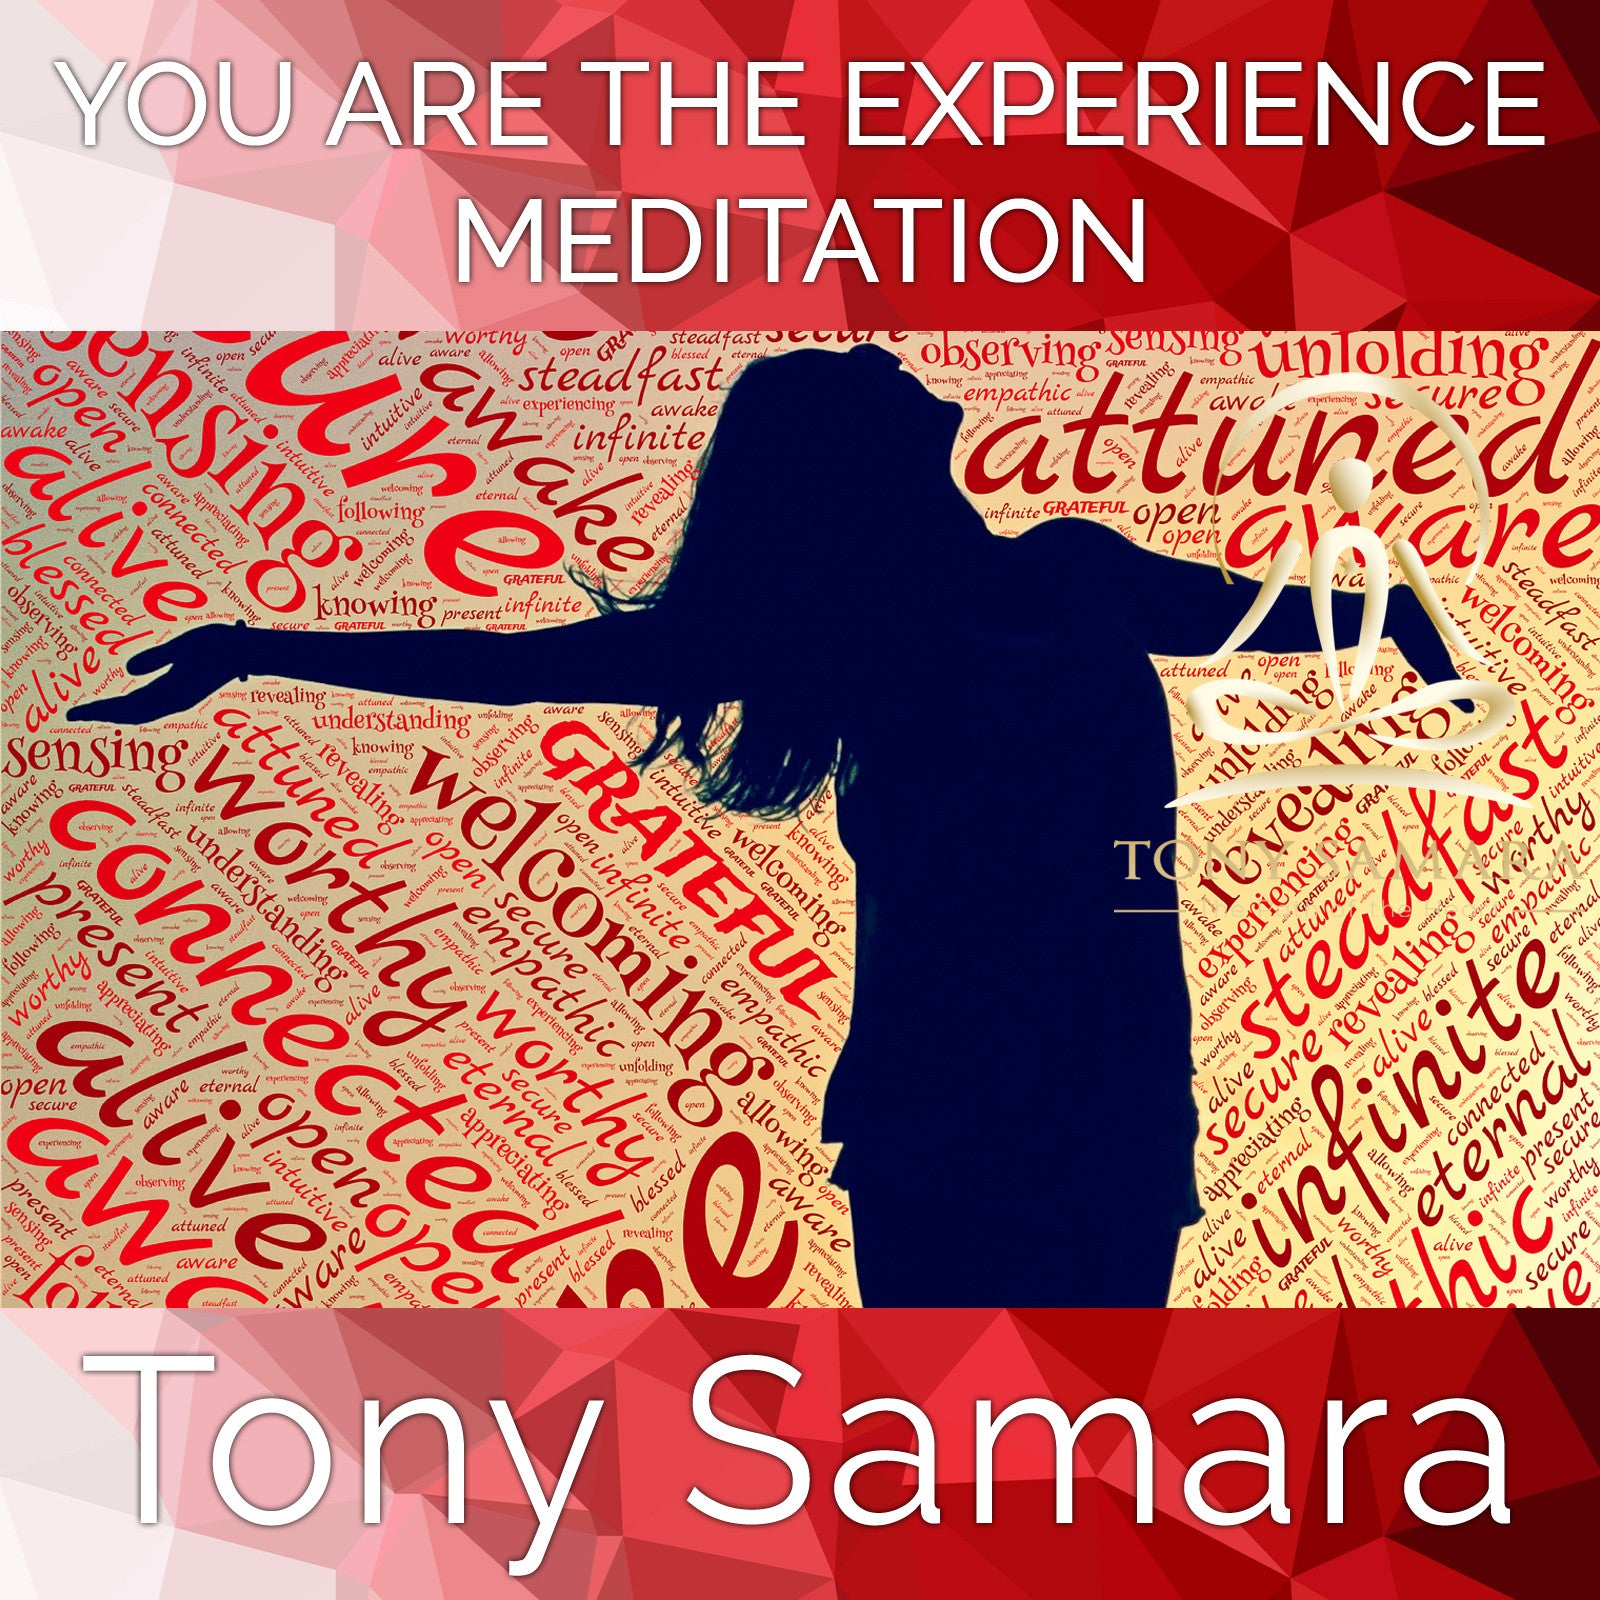 You Are the Experience Meditation (MP3 Audio Download) - Tony Samara Meditation